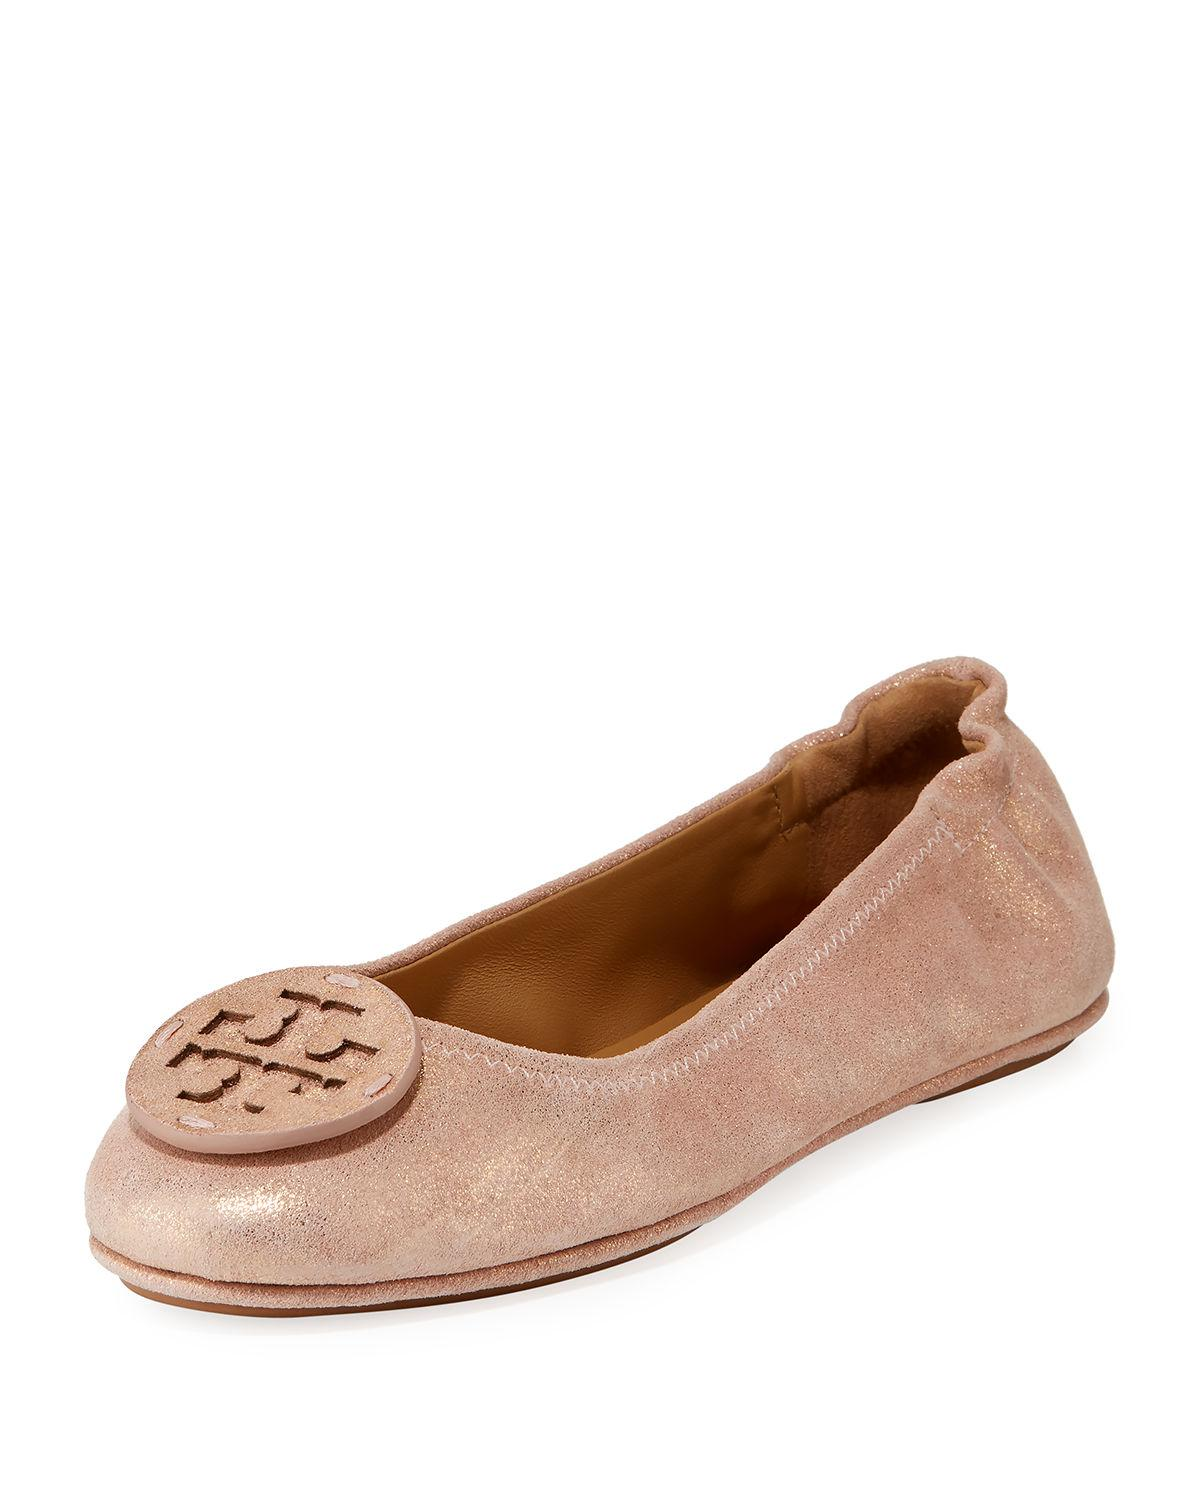 dd7312be8a484b Tory Burch Minnie Travel Ballet Flats With Logo In Metallic Sea Shell Pink